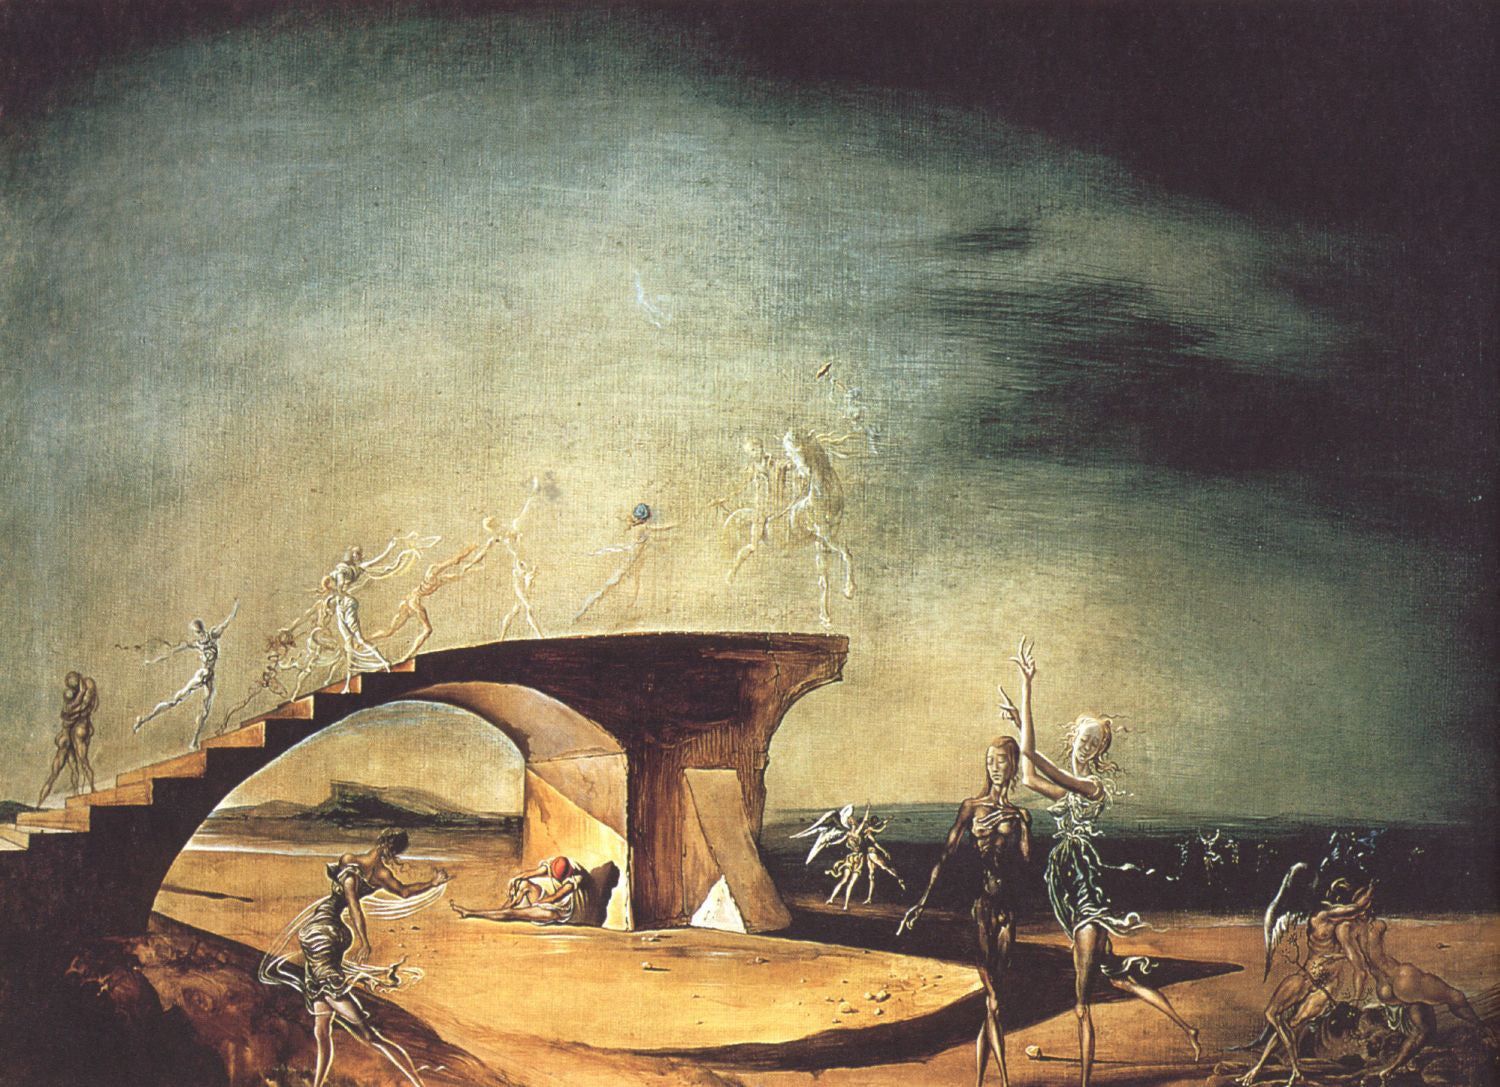 The Broken Bridge and the Dream - Posters by Salvador Dali | Buy ...